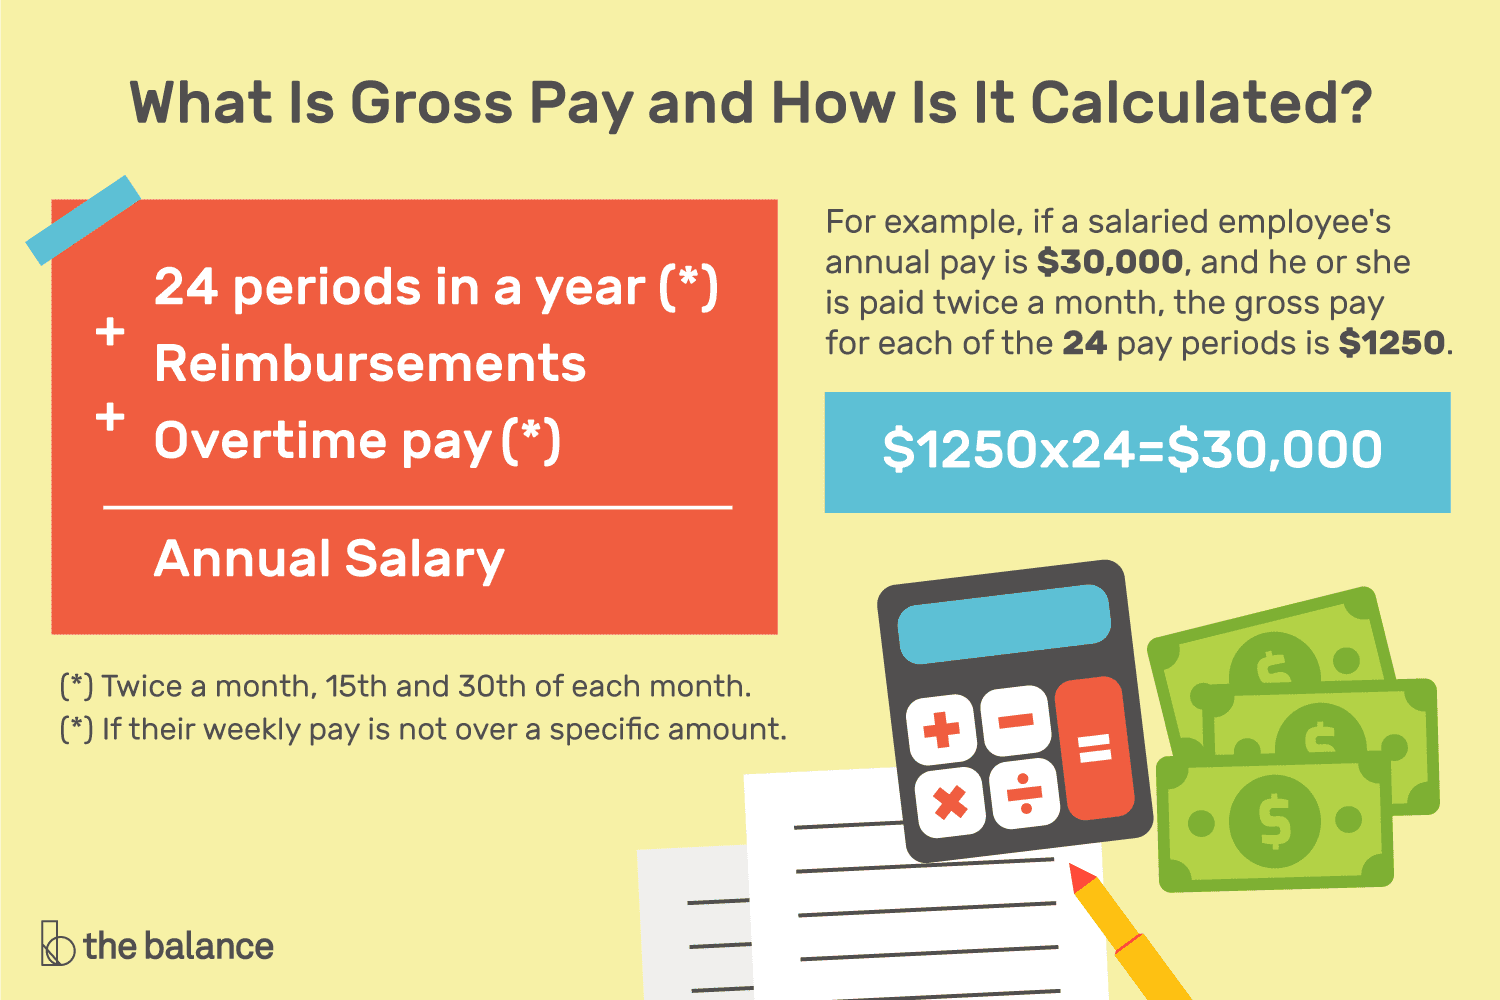 What Is Gross Pay and How Is It Calculated?